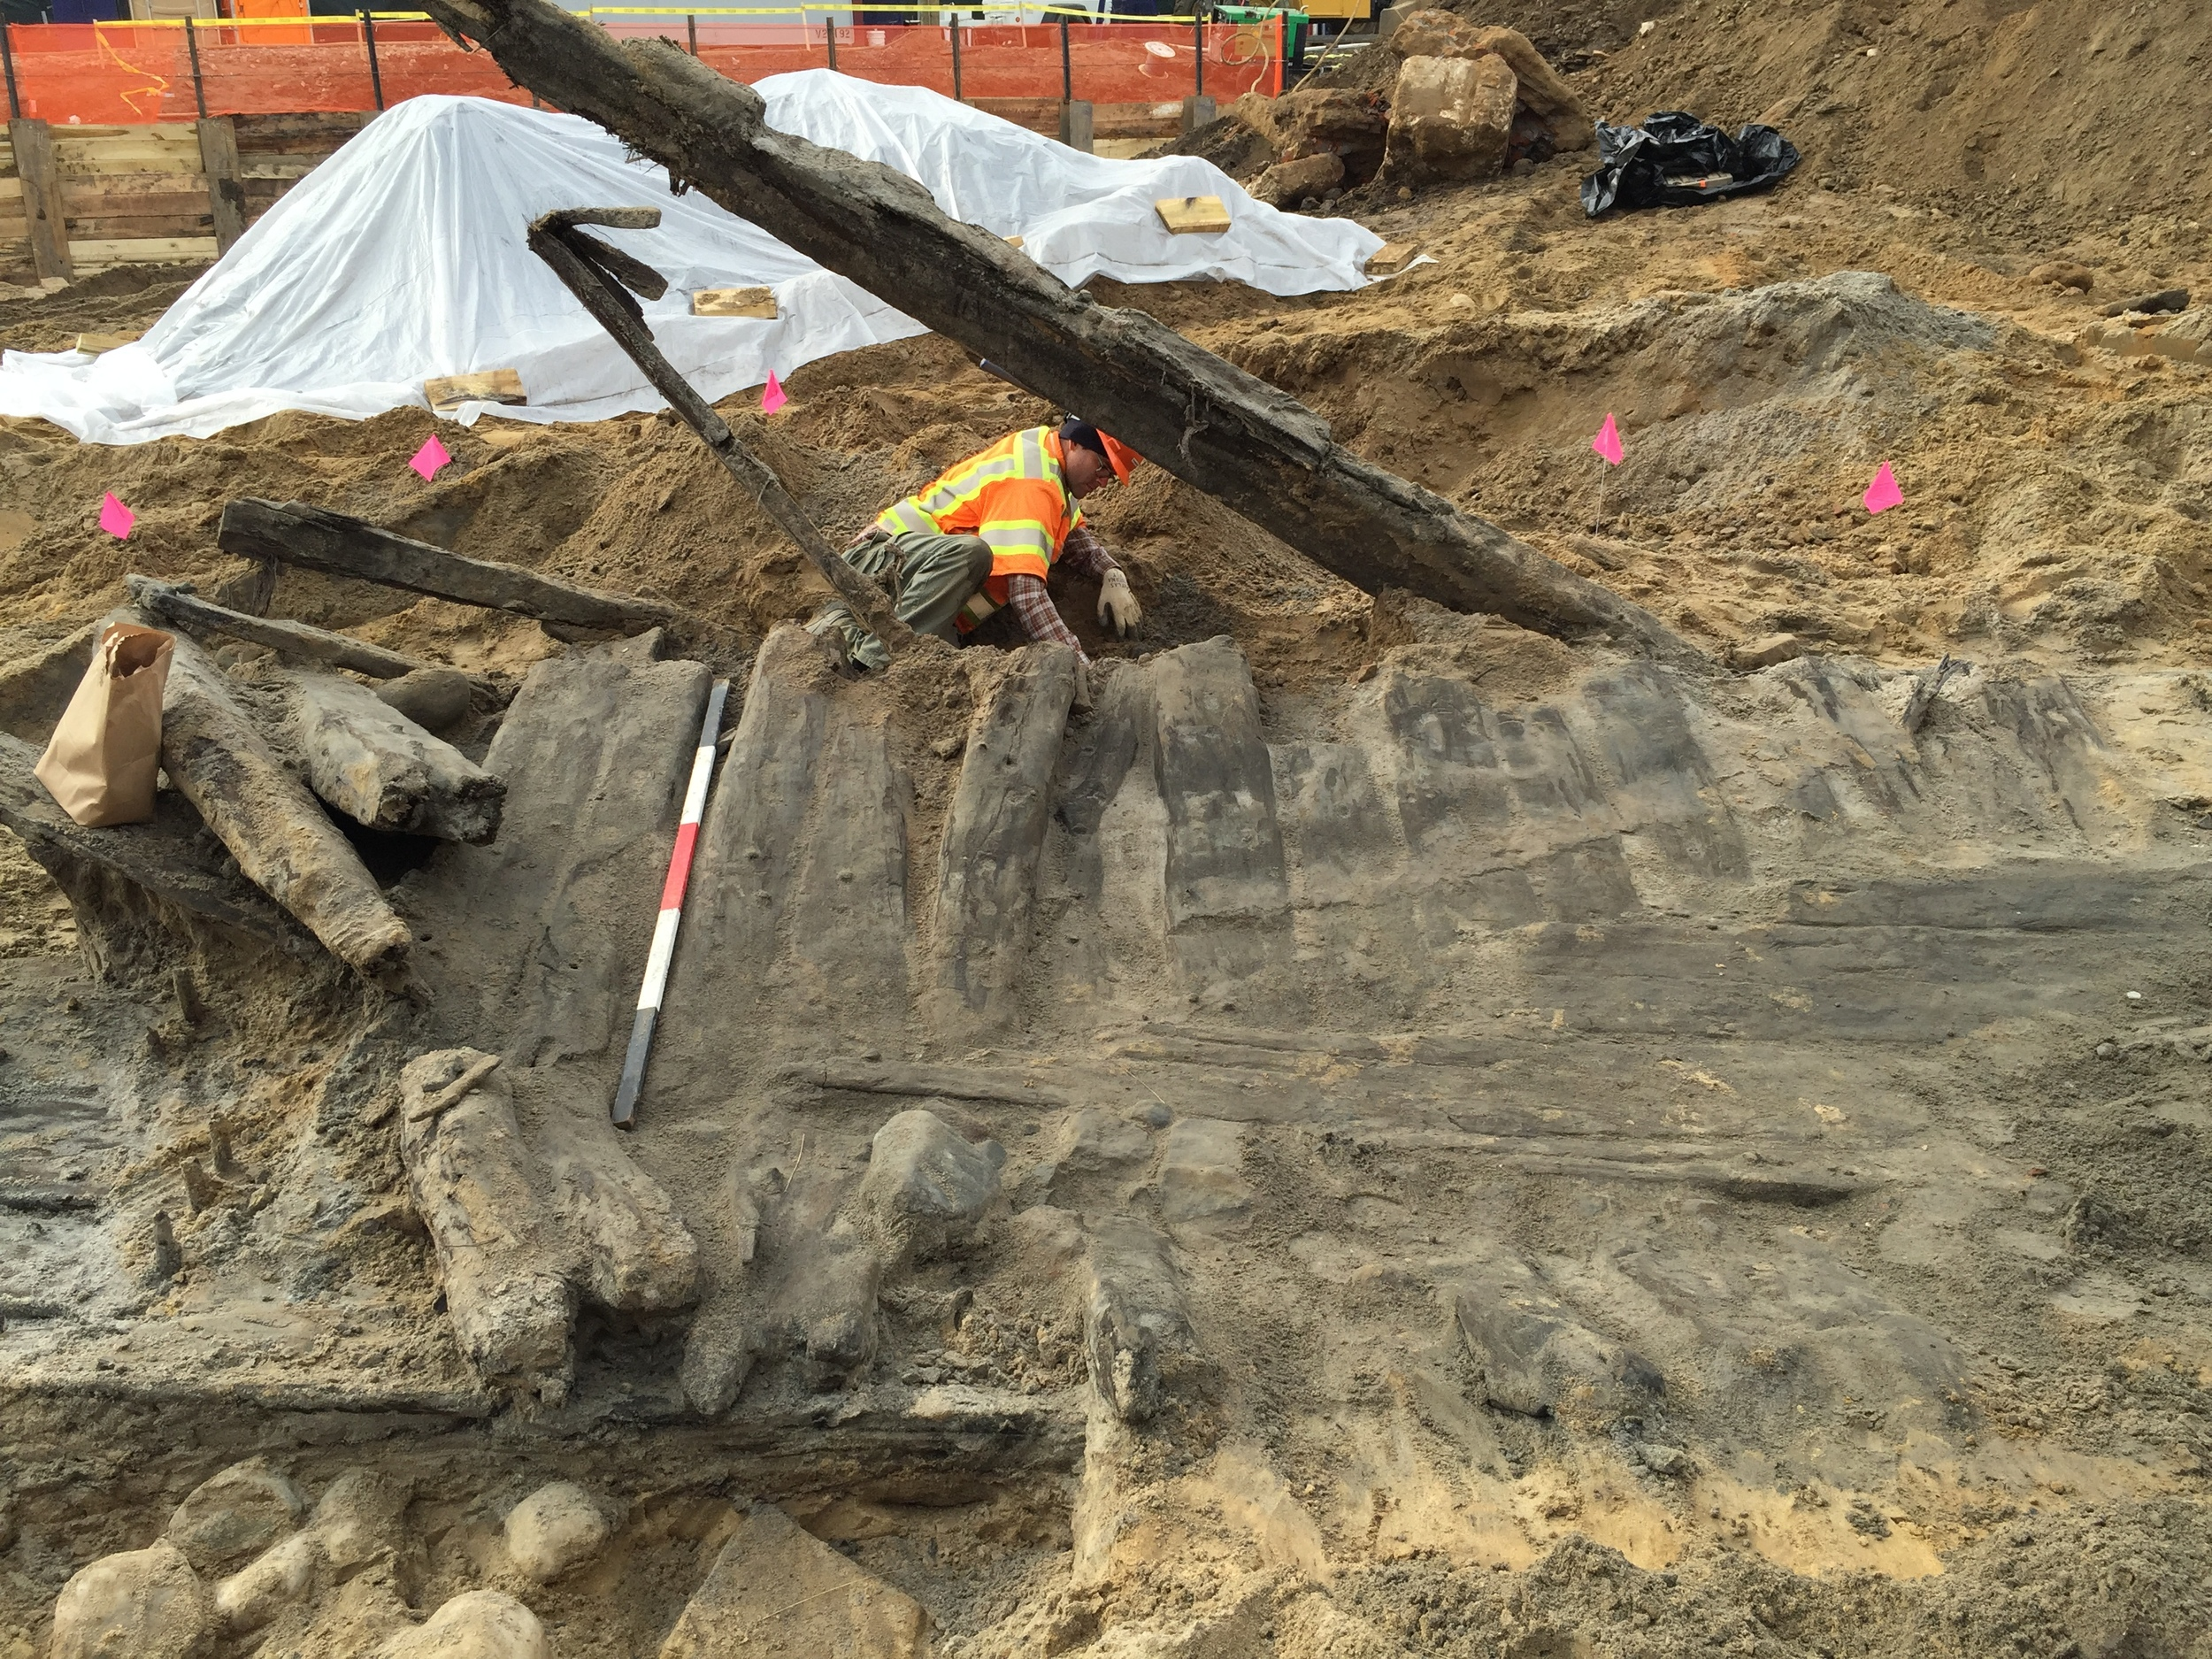 WSSI archeologist Edward Johnson hand excavates around the ship's hull to recover artifacts.